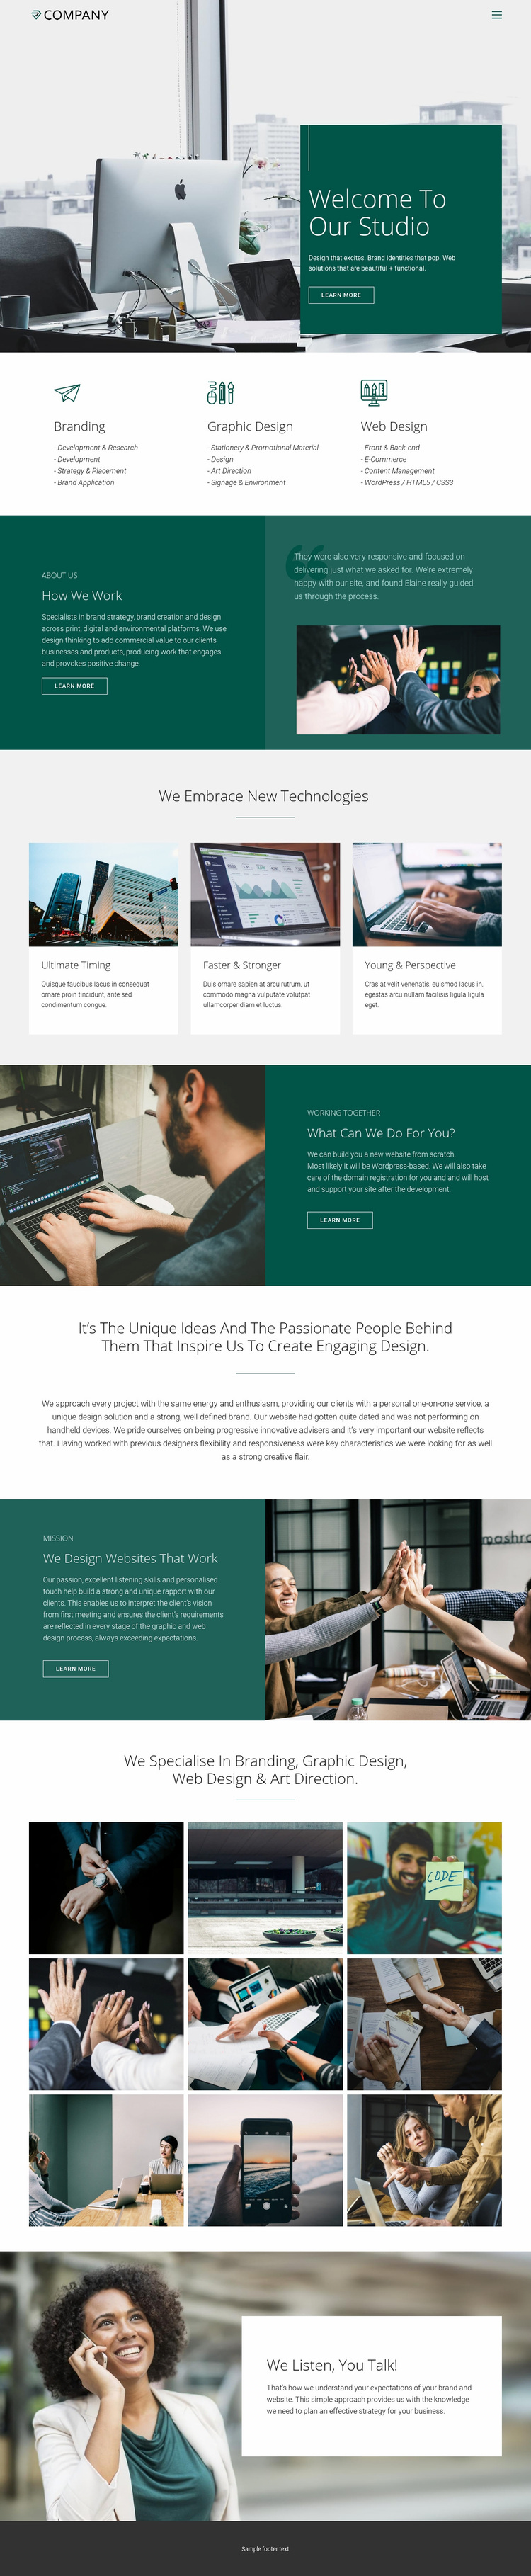 Trusty relations in business Web Page Designer